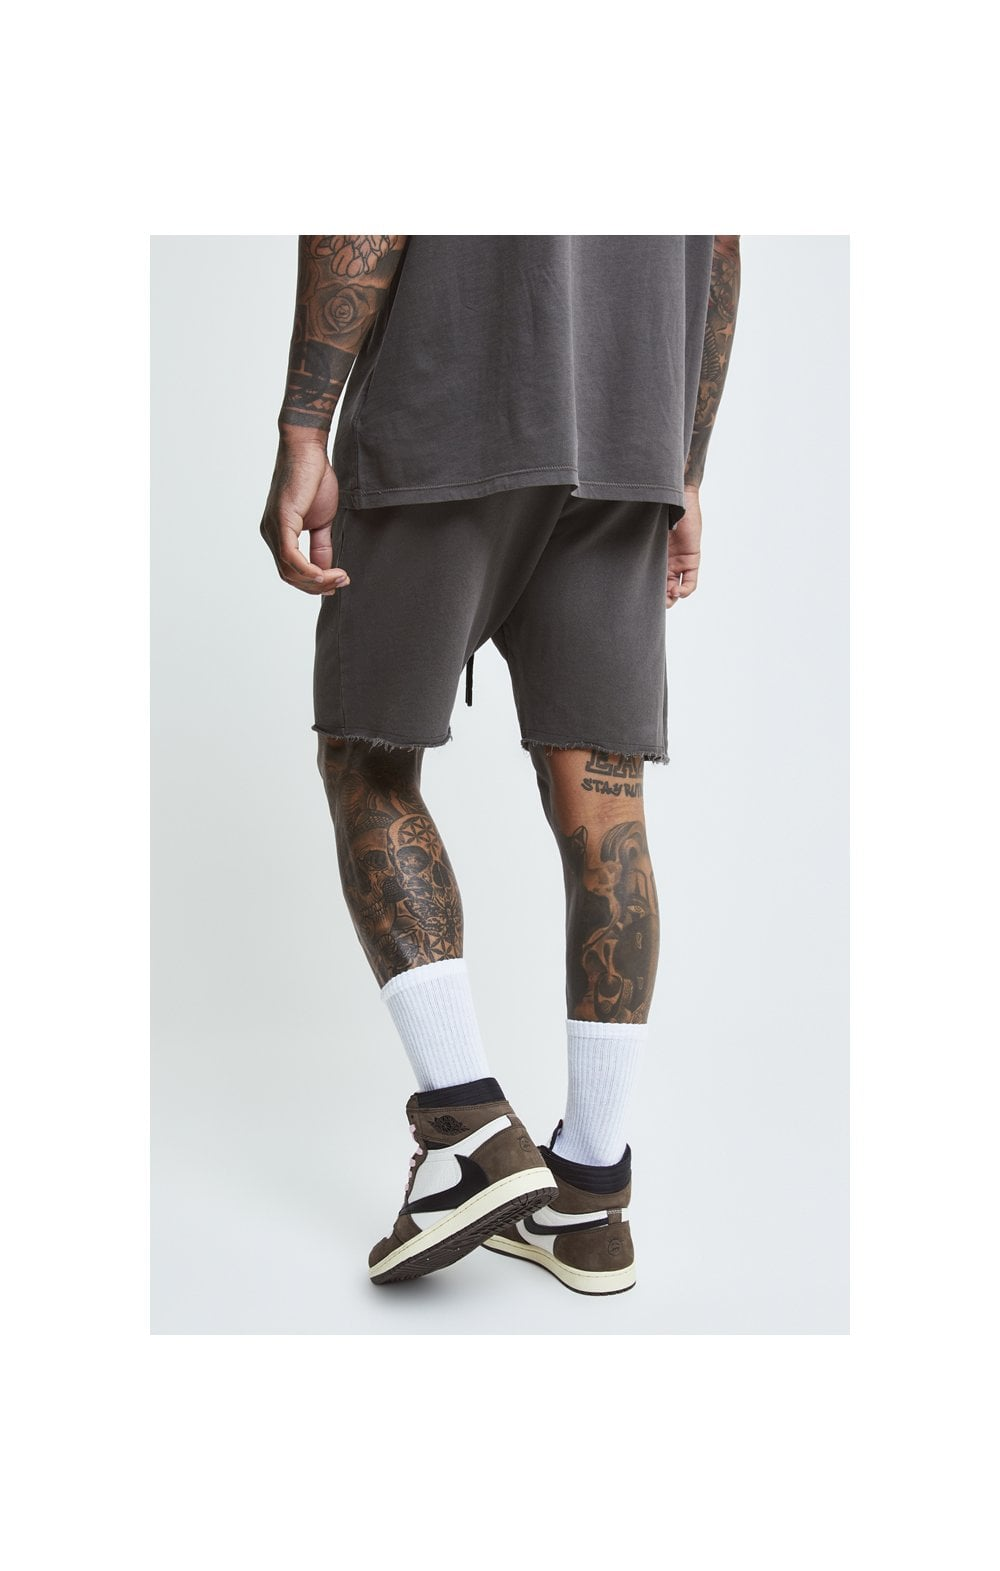 Load image into Gallery viewer, SikSilk X Steve Aoki Relaxed Shorts - Washed Grey (2)